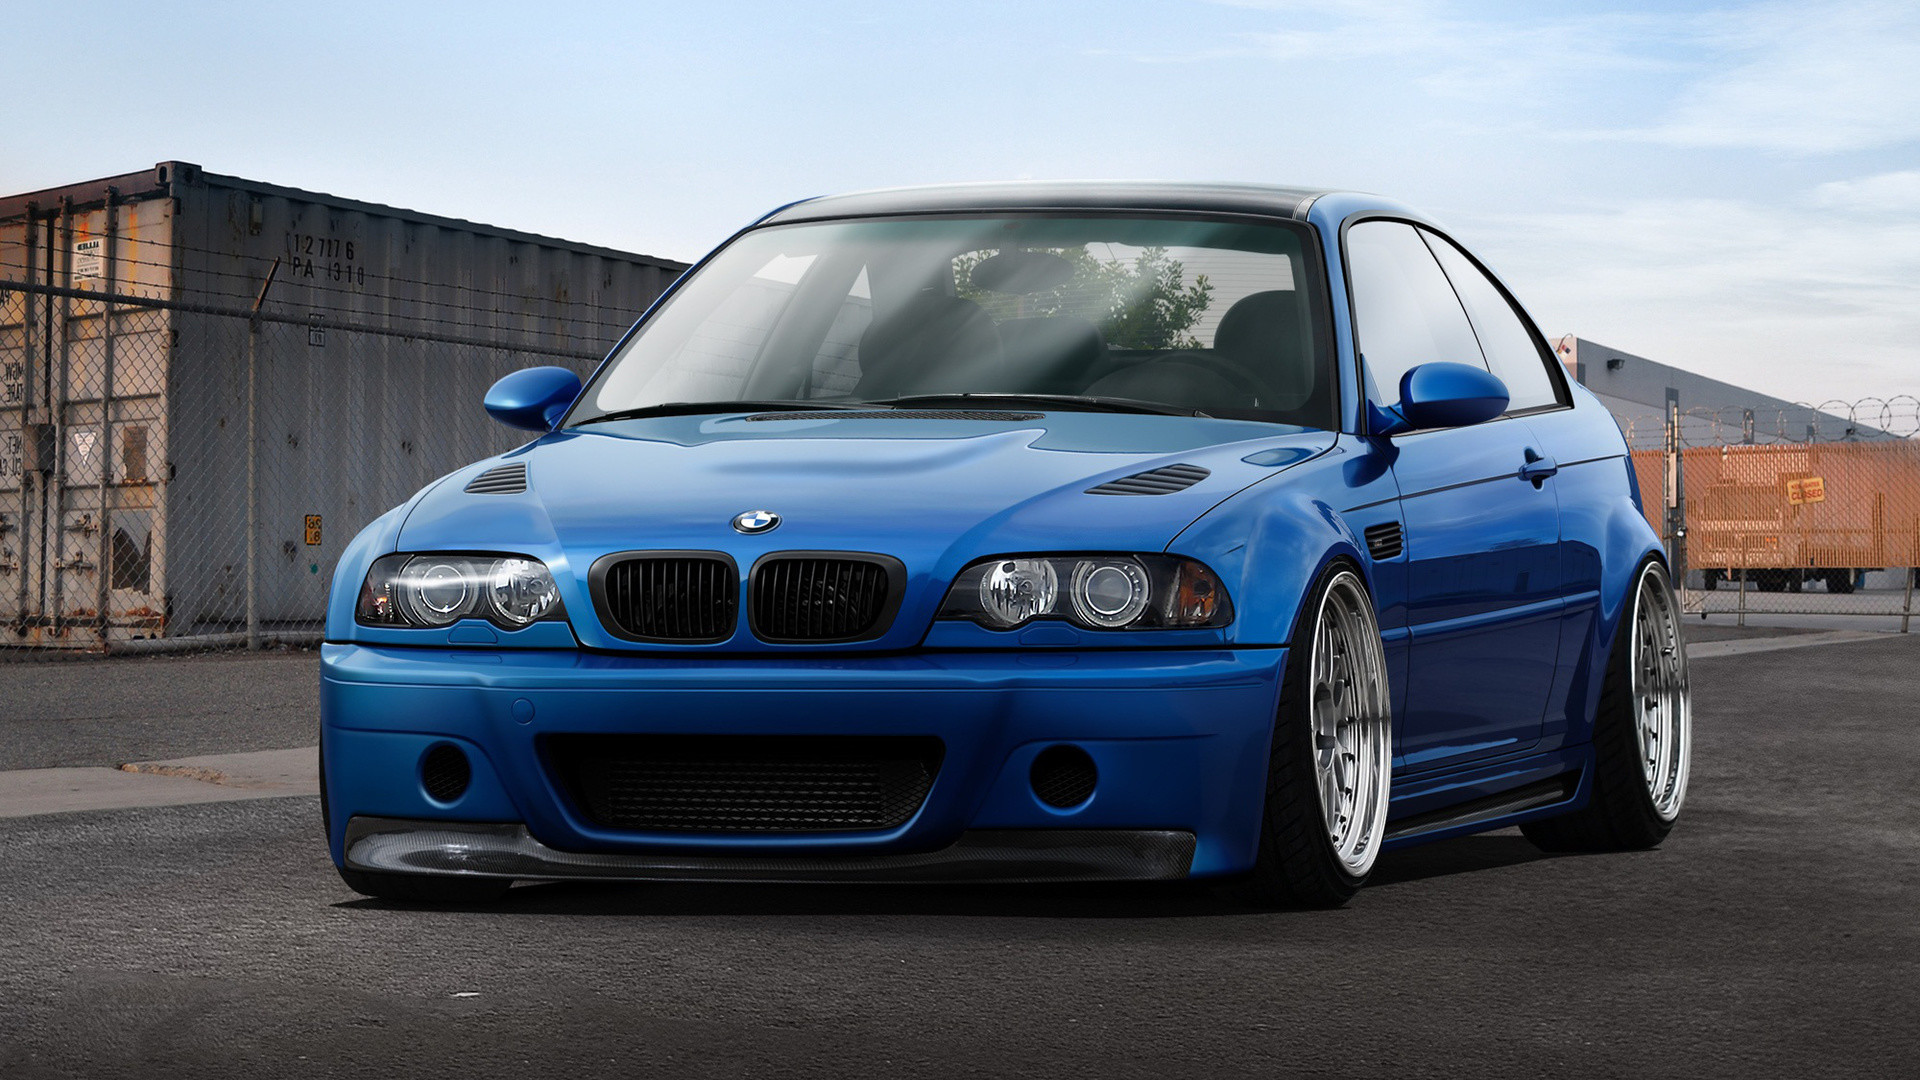 1920x1080 Bmw E46 M3 Wallpapers HD